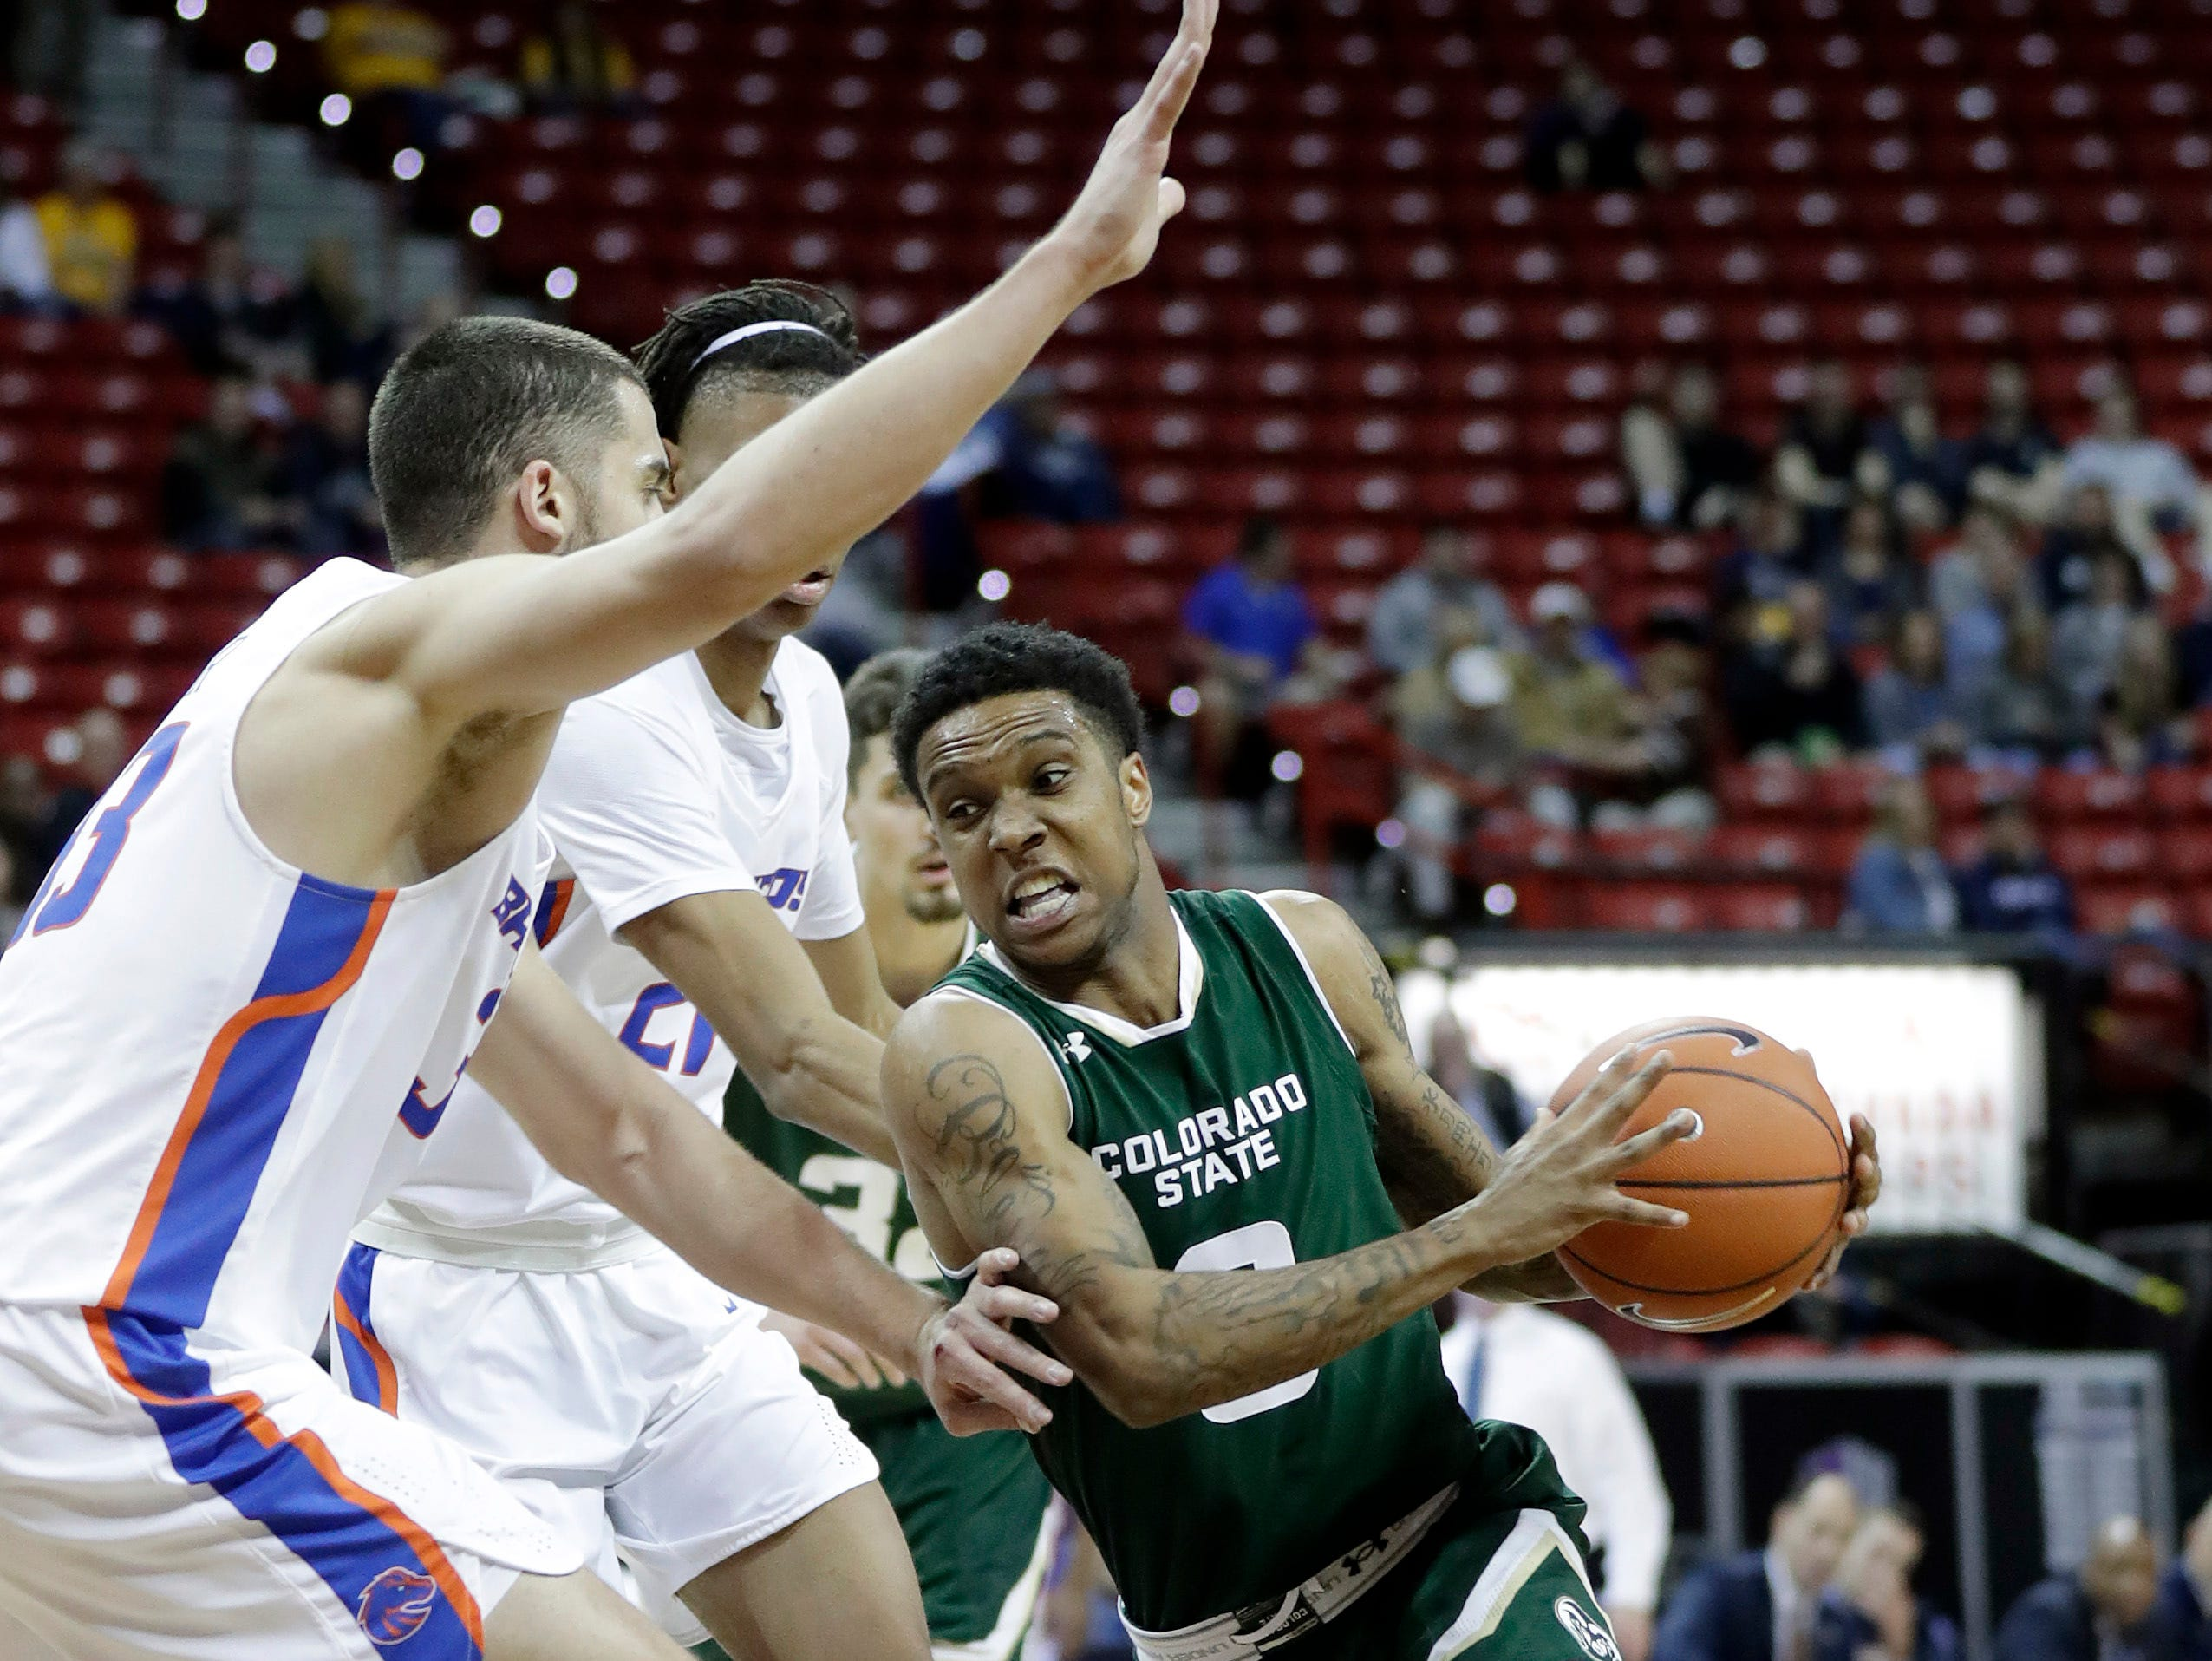 Colorado State's Hyron Edwards, right, drives against Boise State during the second half of an NCAA college basketball game in the Mountain West Conference tournament Wednesday, March 13, 2019, in Las Vegas.